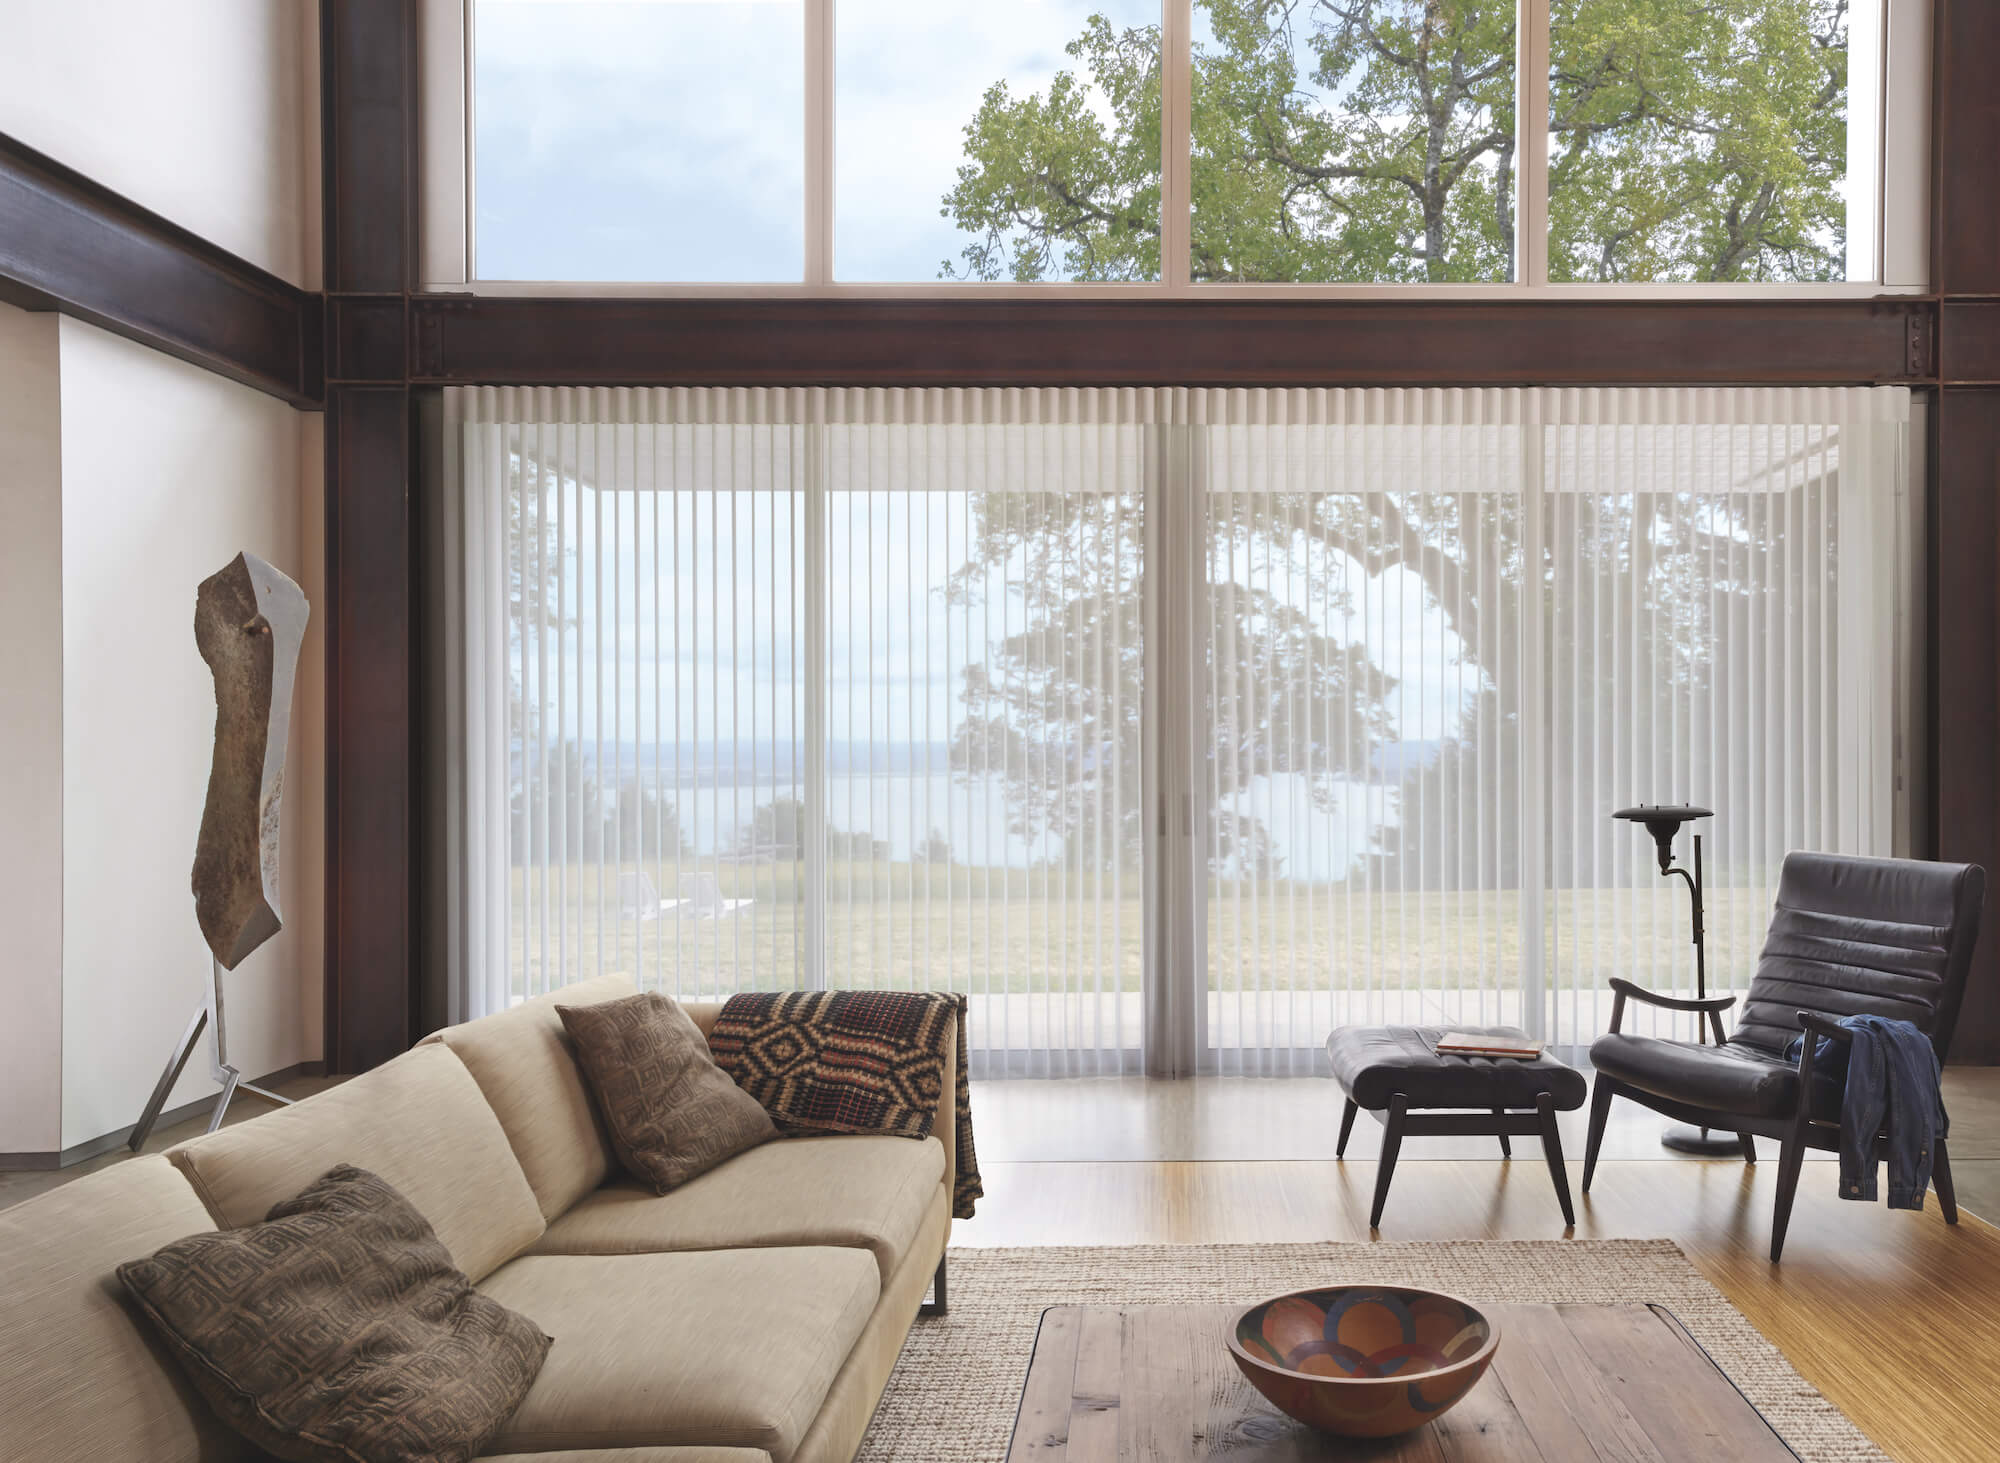 LuminettePrivacy Sheers vanes tilted open to lake front view